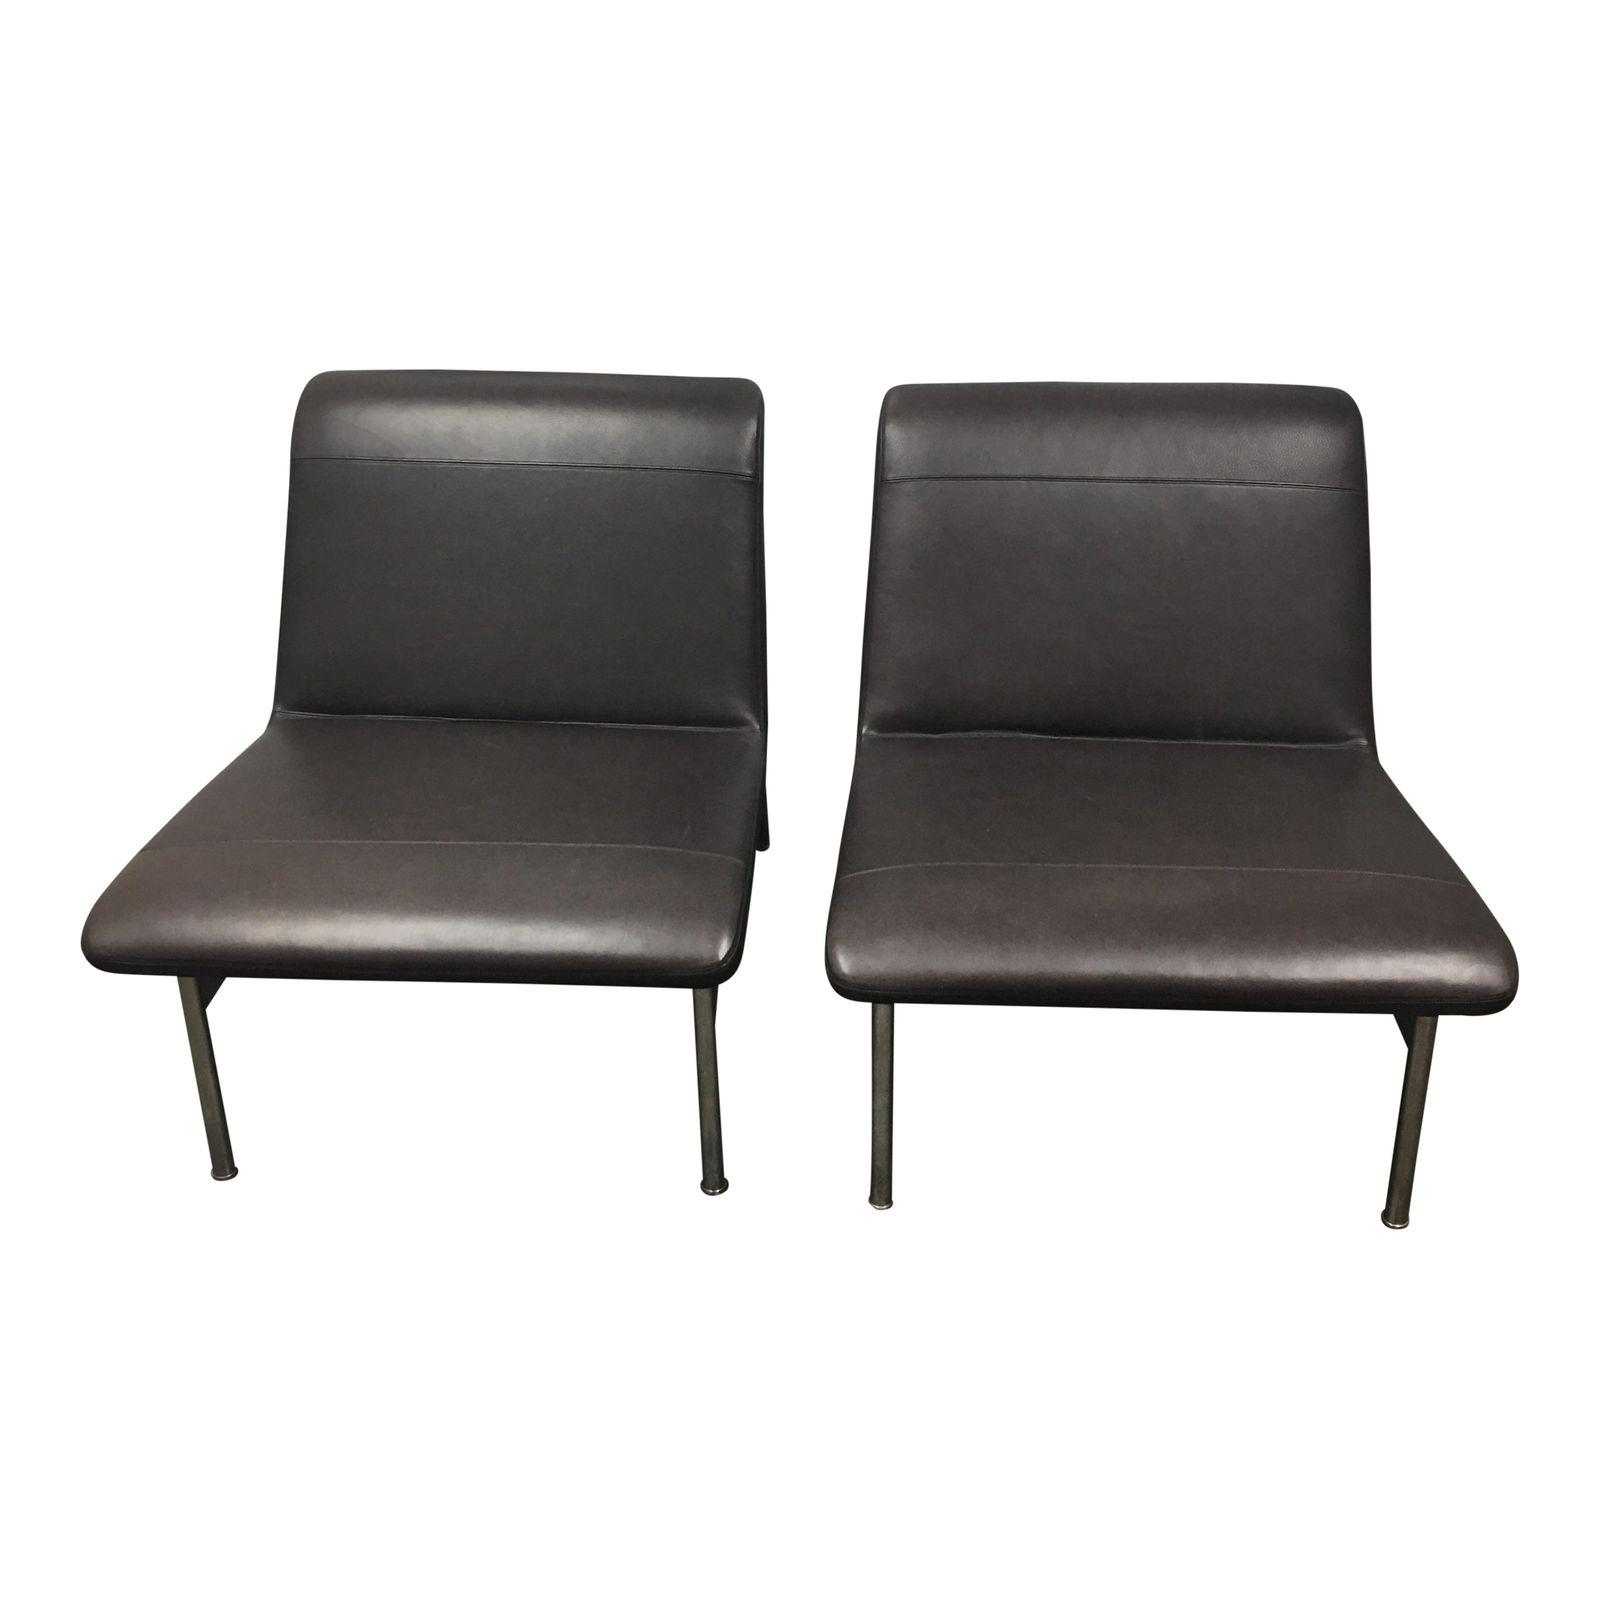 new bernhardt cp2 leather chrome lounge chairs a pair original